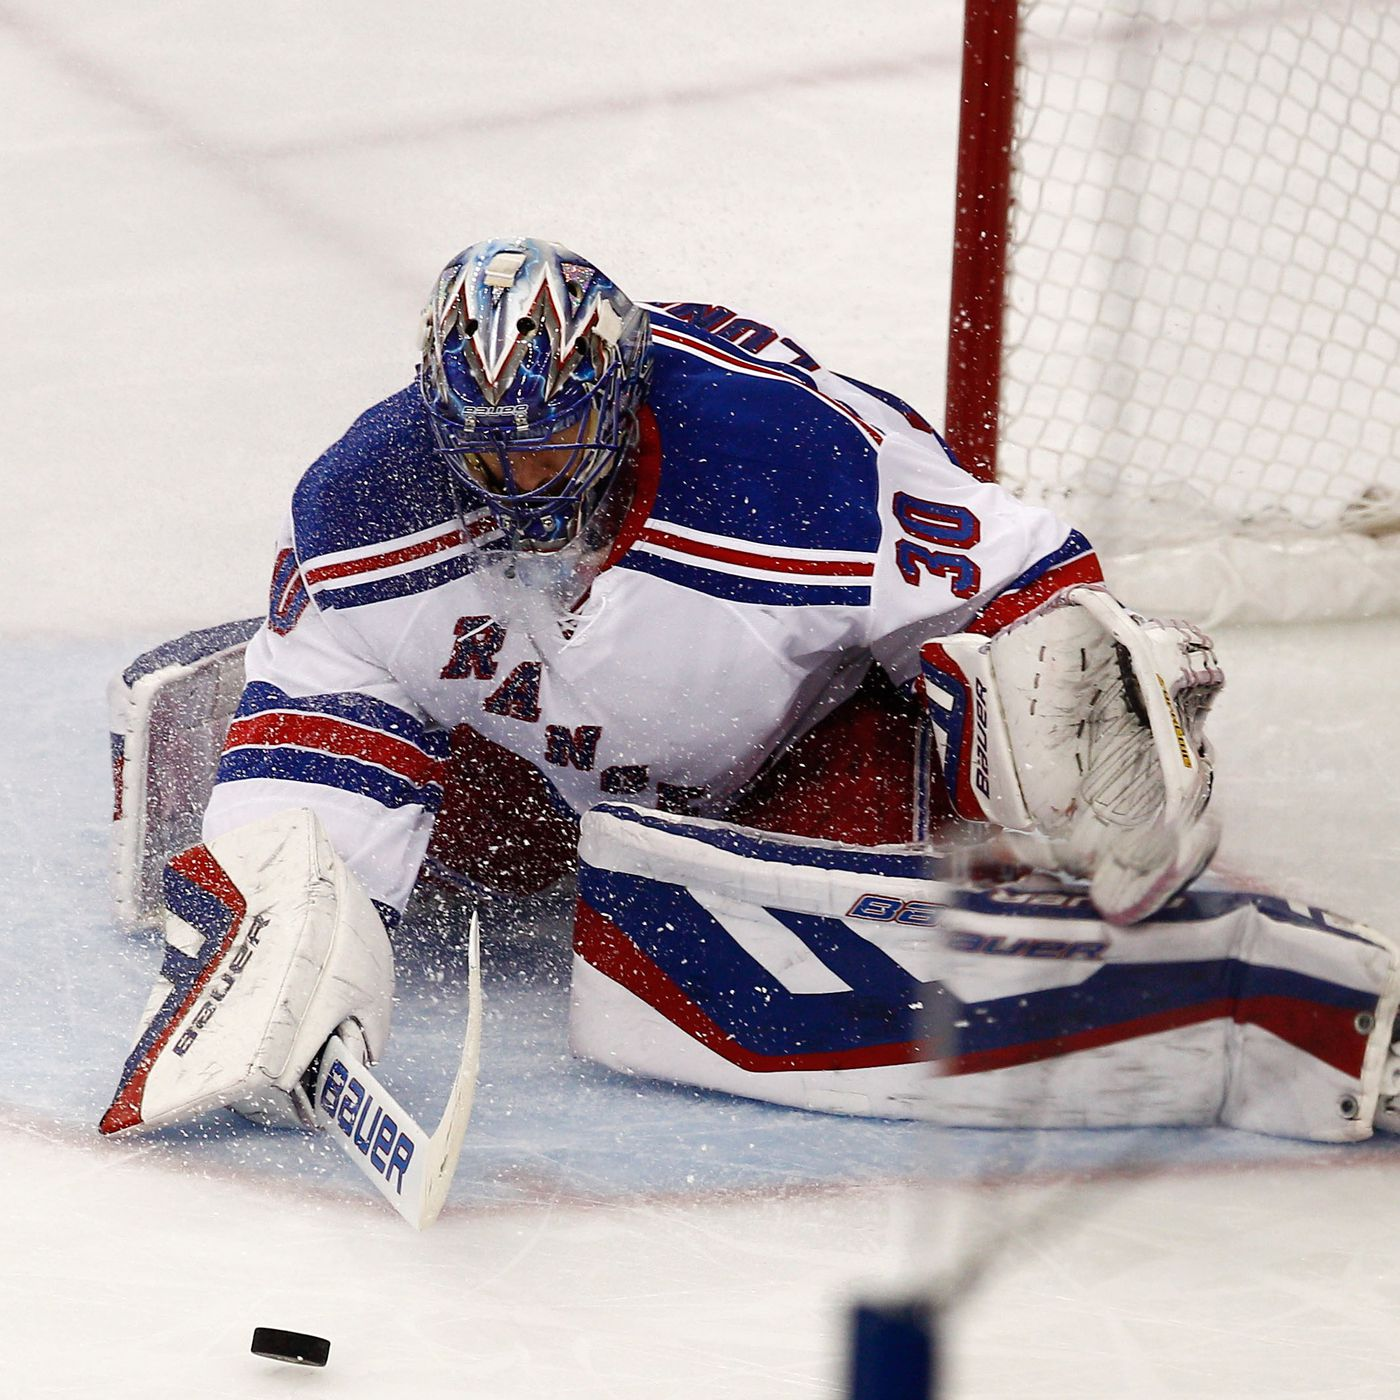 Nhl Playoff Betting Tampa Bay Lightning Vs New York Rangers Game 7